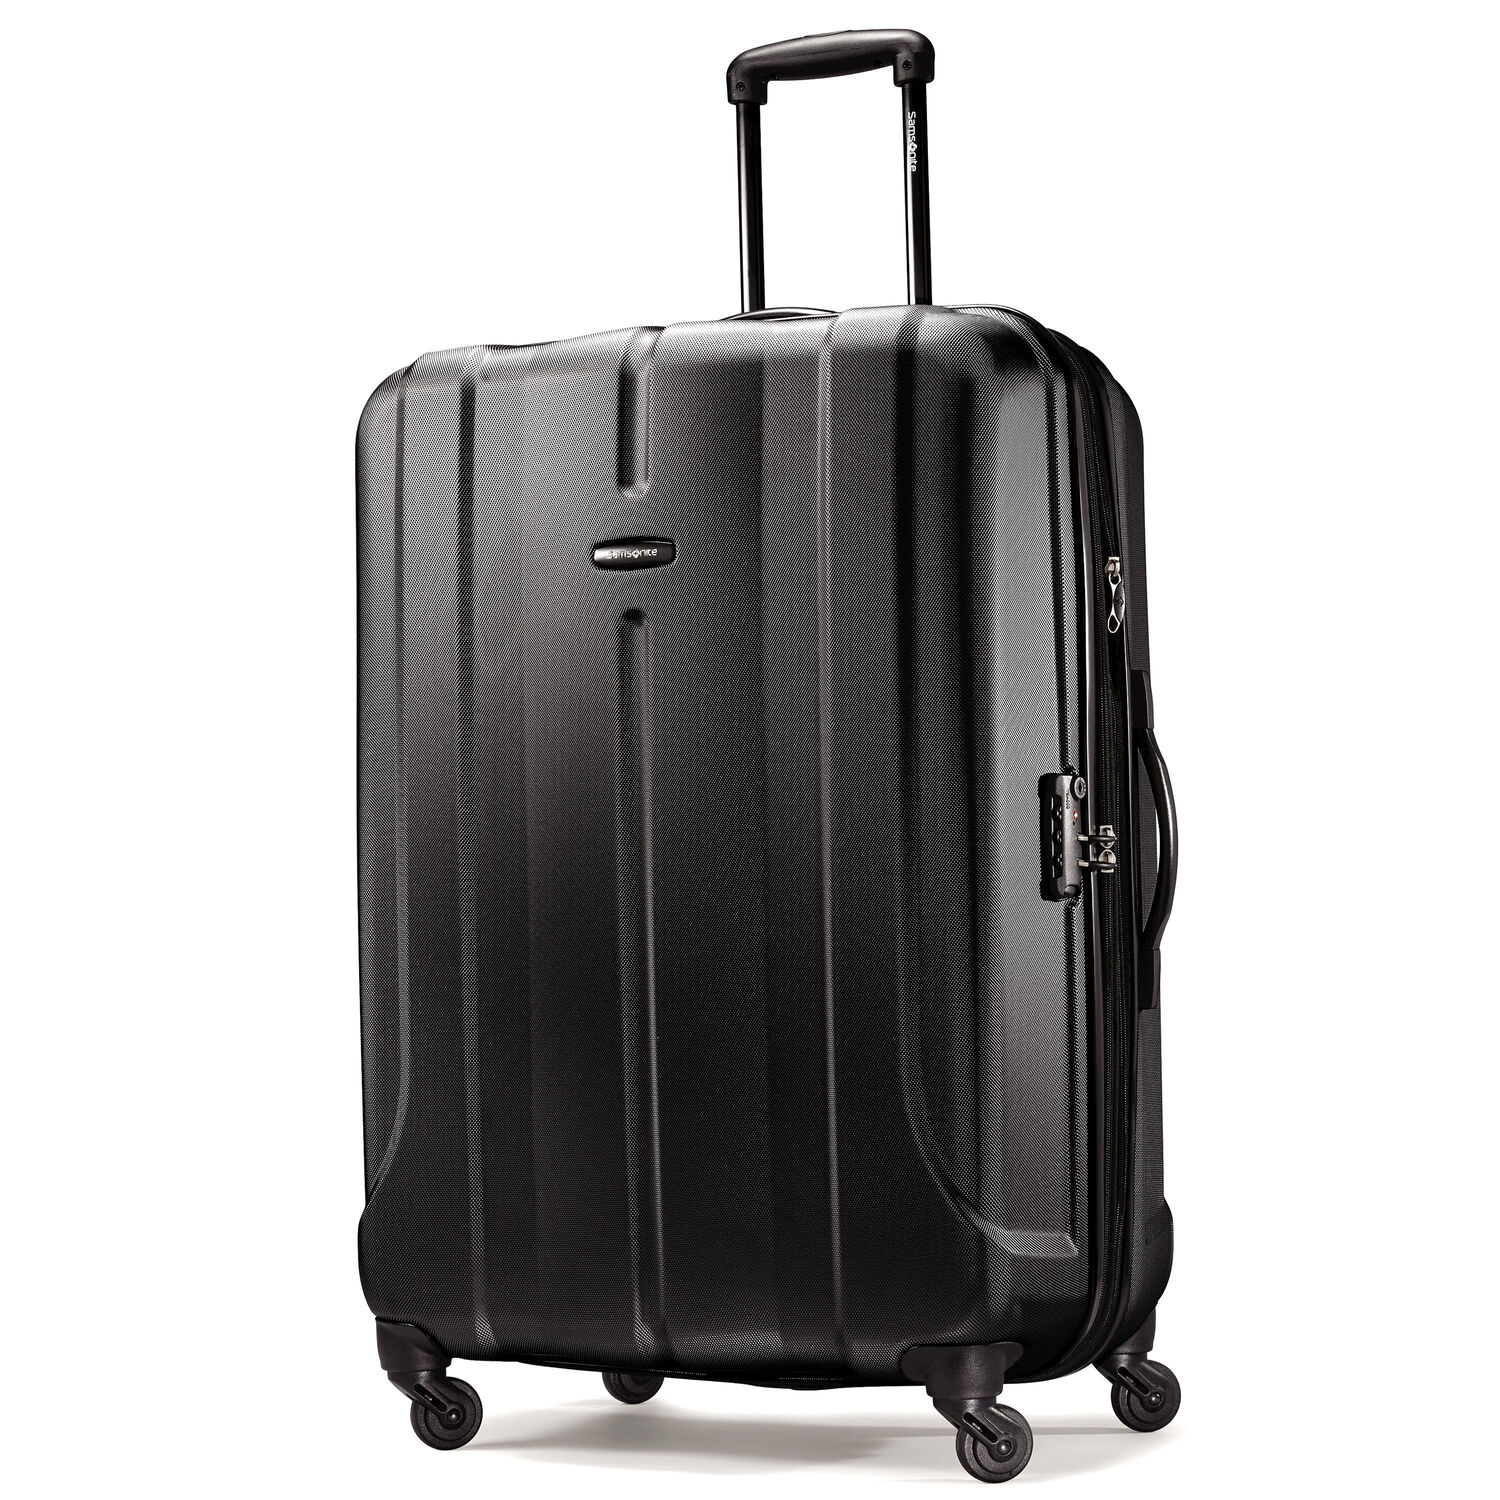 Samsonite Fiero 28 Quot Spinner